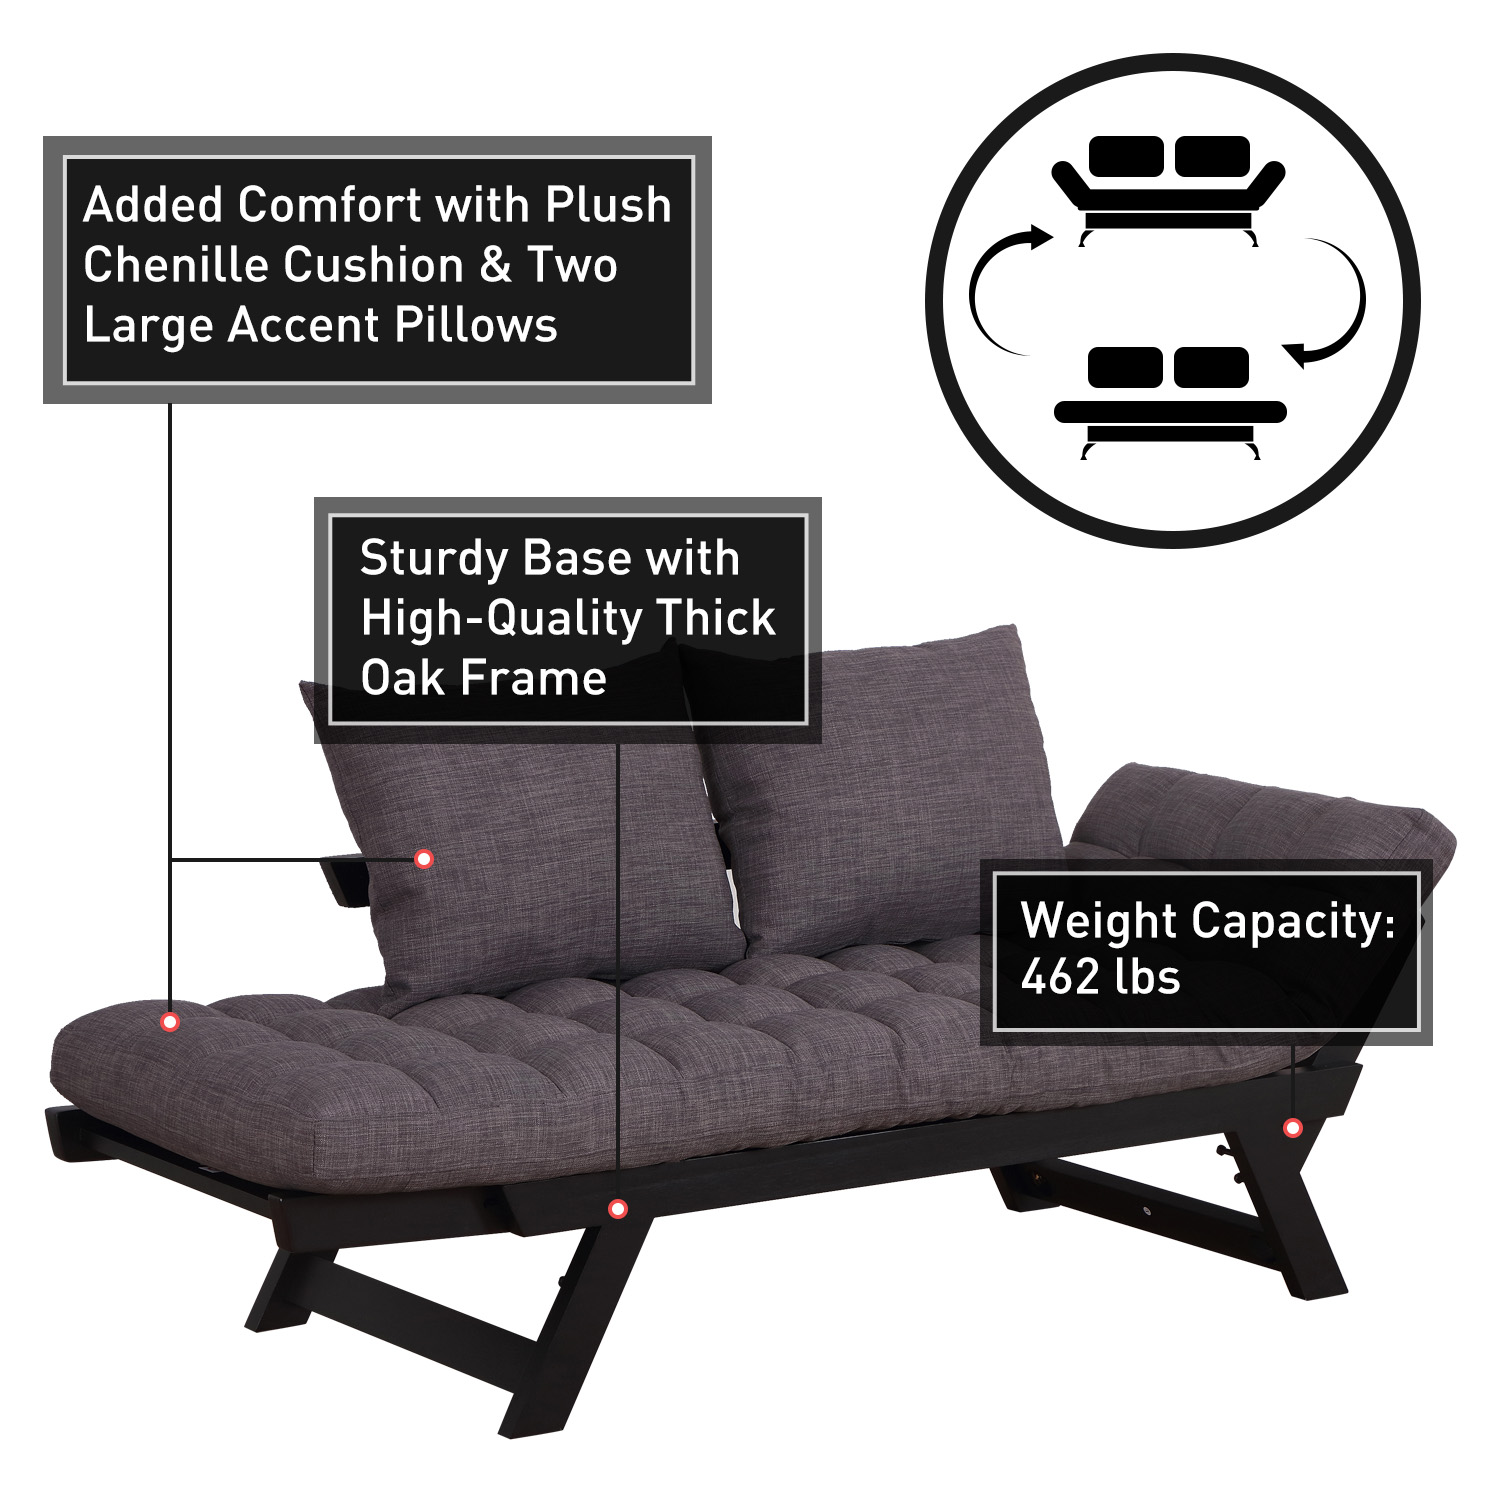 Convertible-Sofa-Bed-Sleeper-Couch-Chaise-Lounge-Chair-Adjustable-Padded-Pillow thumbnail 22